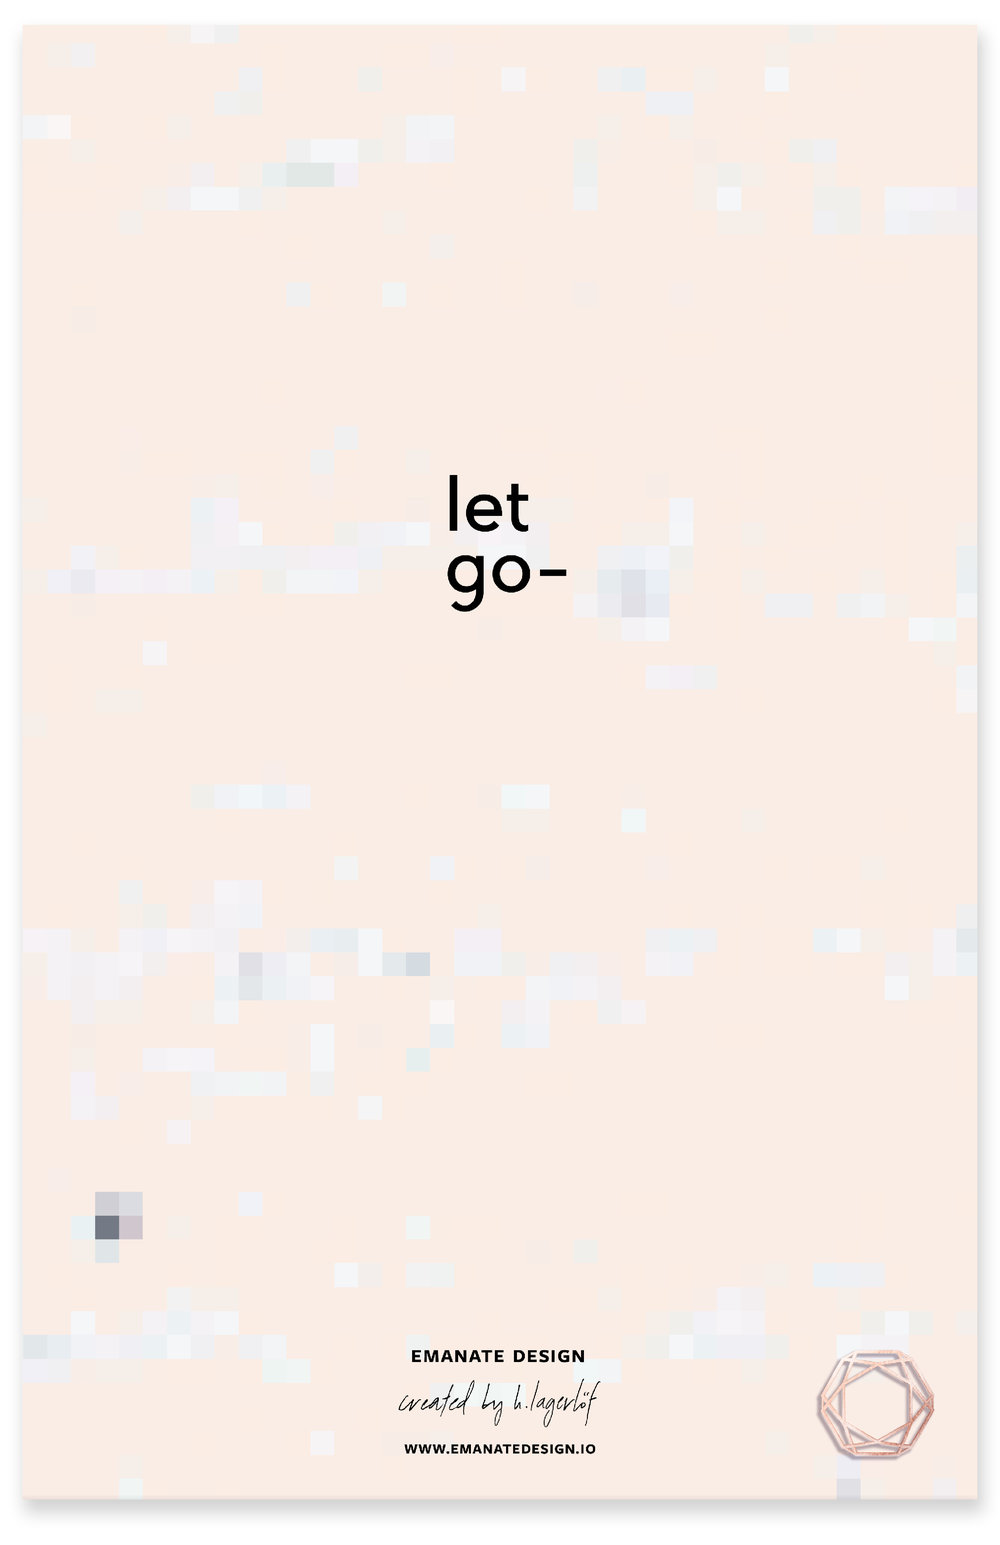 Let Go / Emanate Design